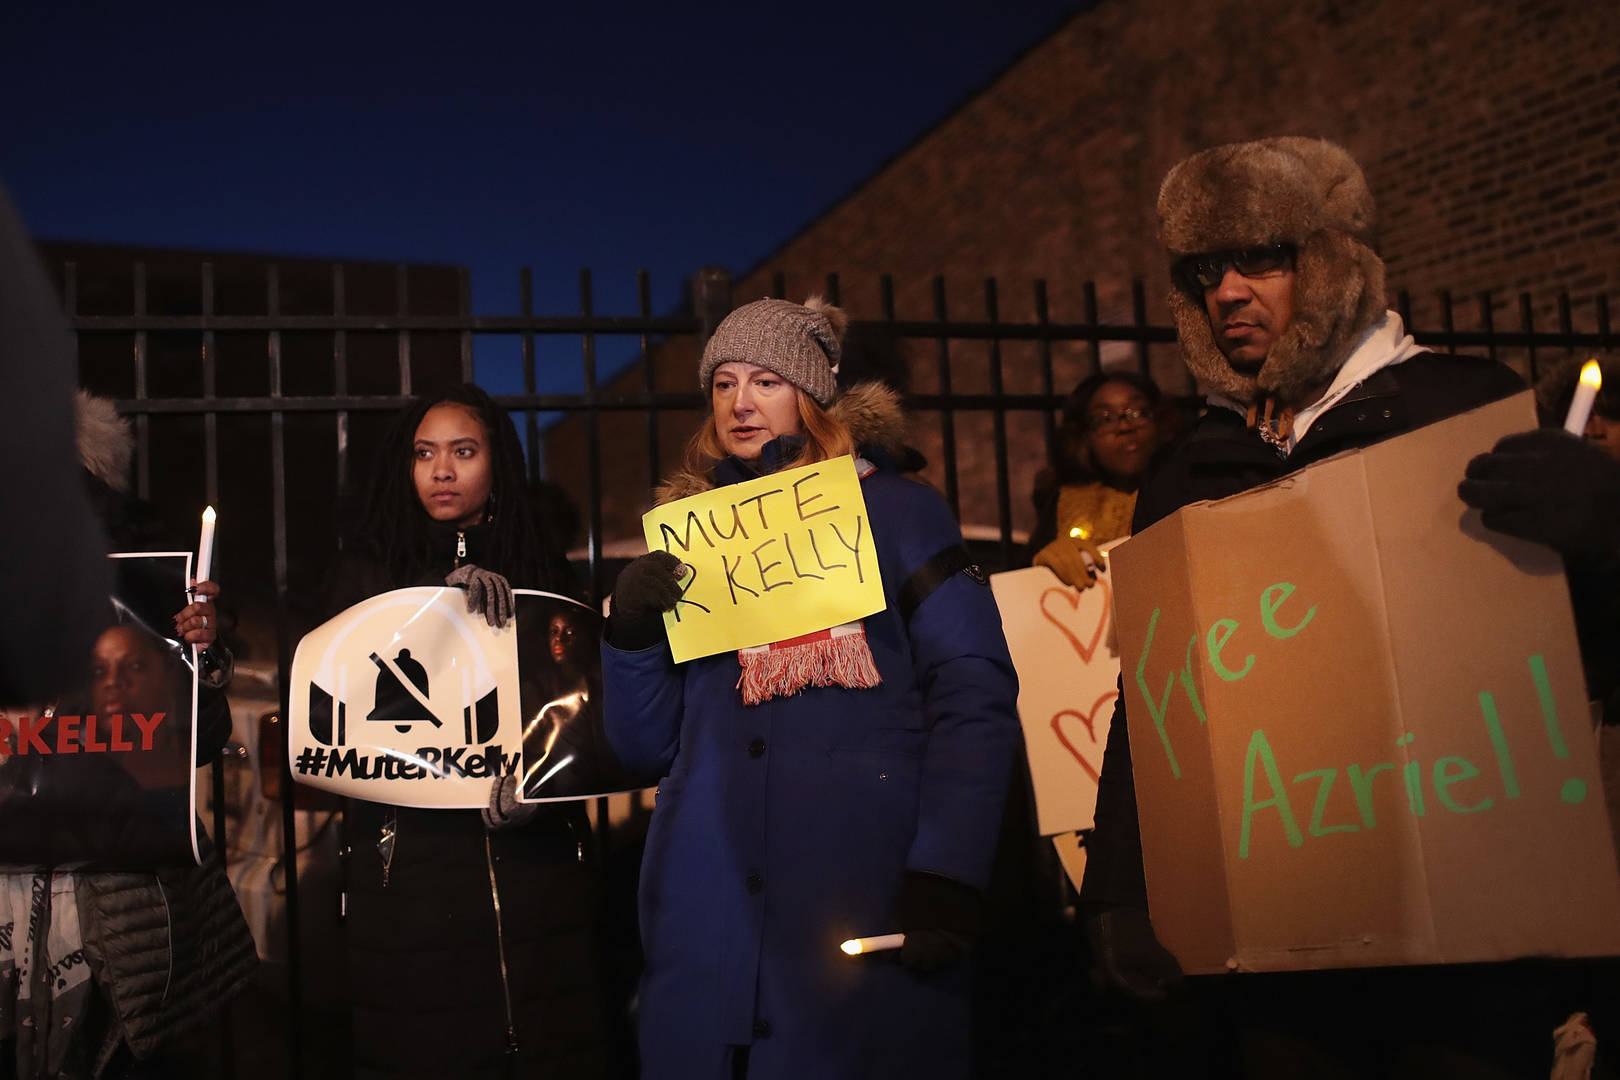 R. Kelly Supporters Clash With Protesters Outside His Chicago Studio